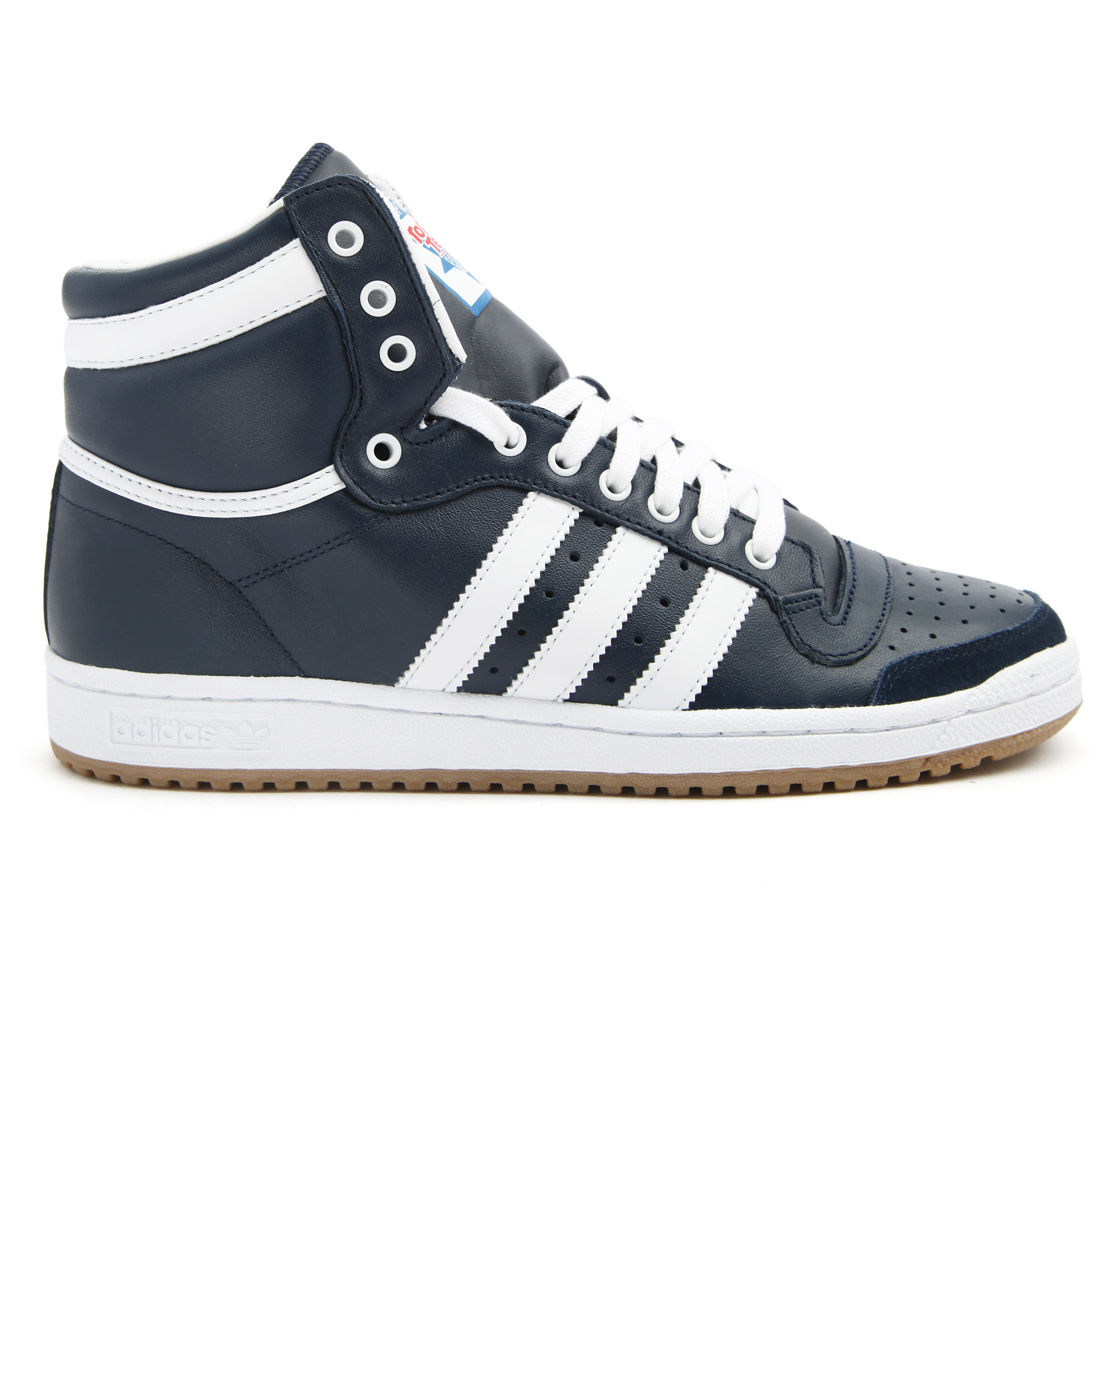 Adidas Top Ten Hi Blue Leather Sneakers In Blue For Men